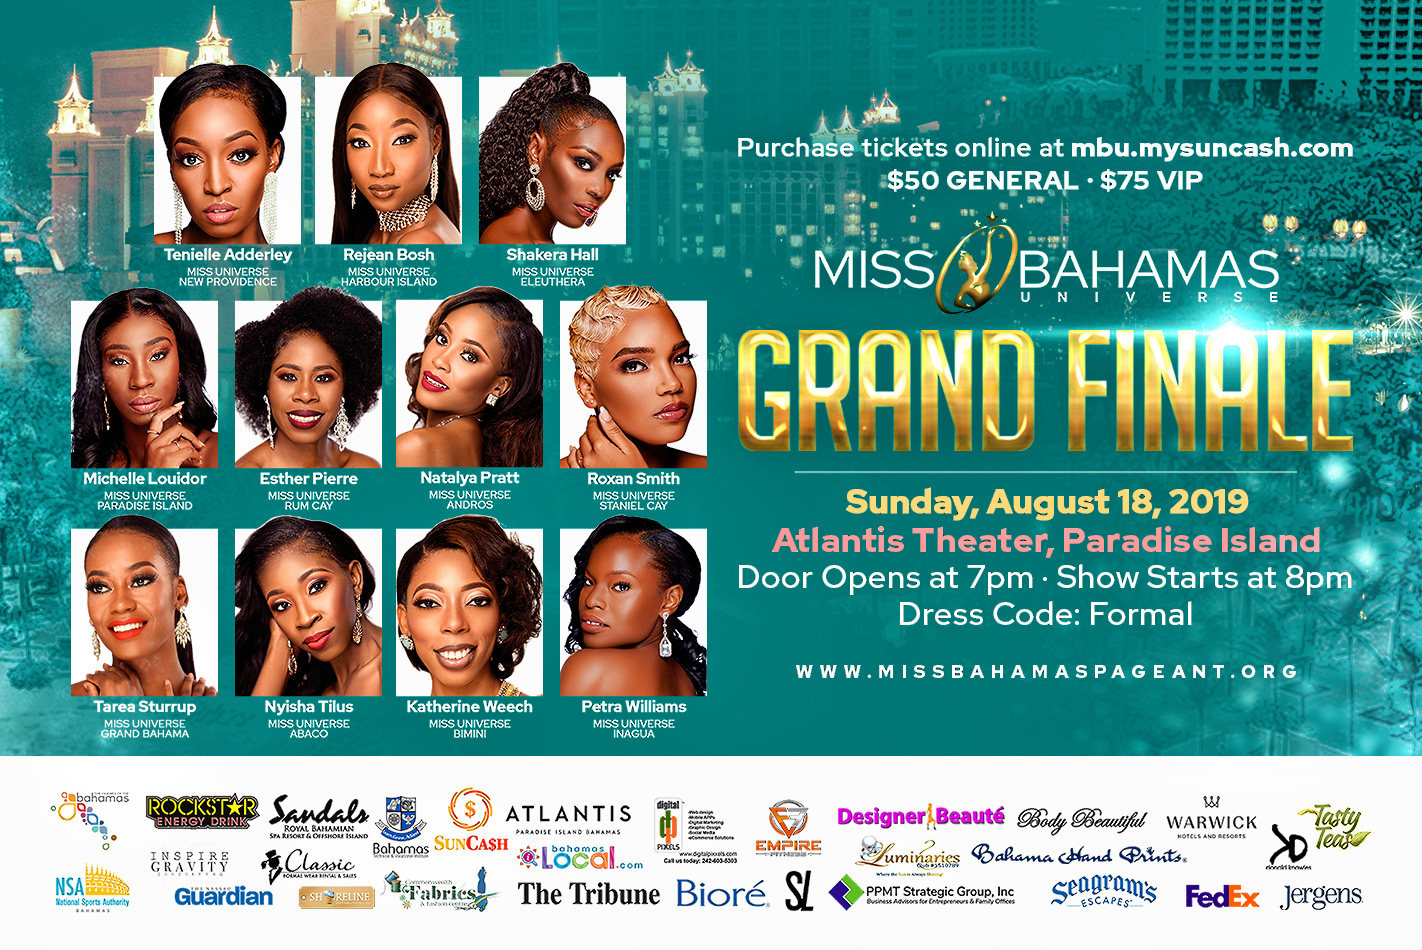 Miss Bahamas Universe Grand Finale